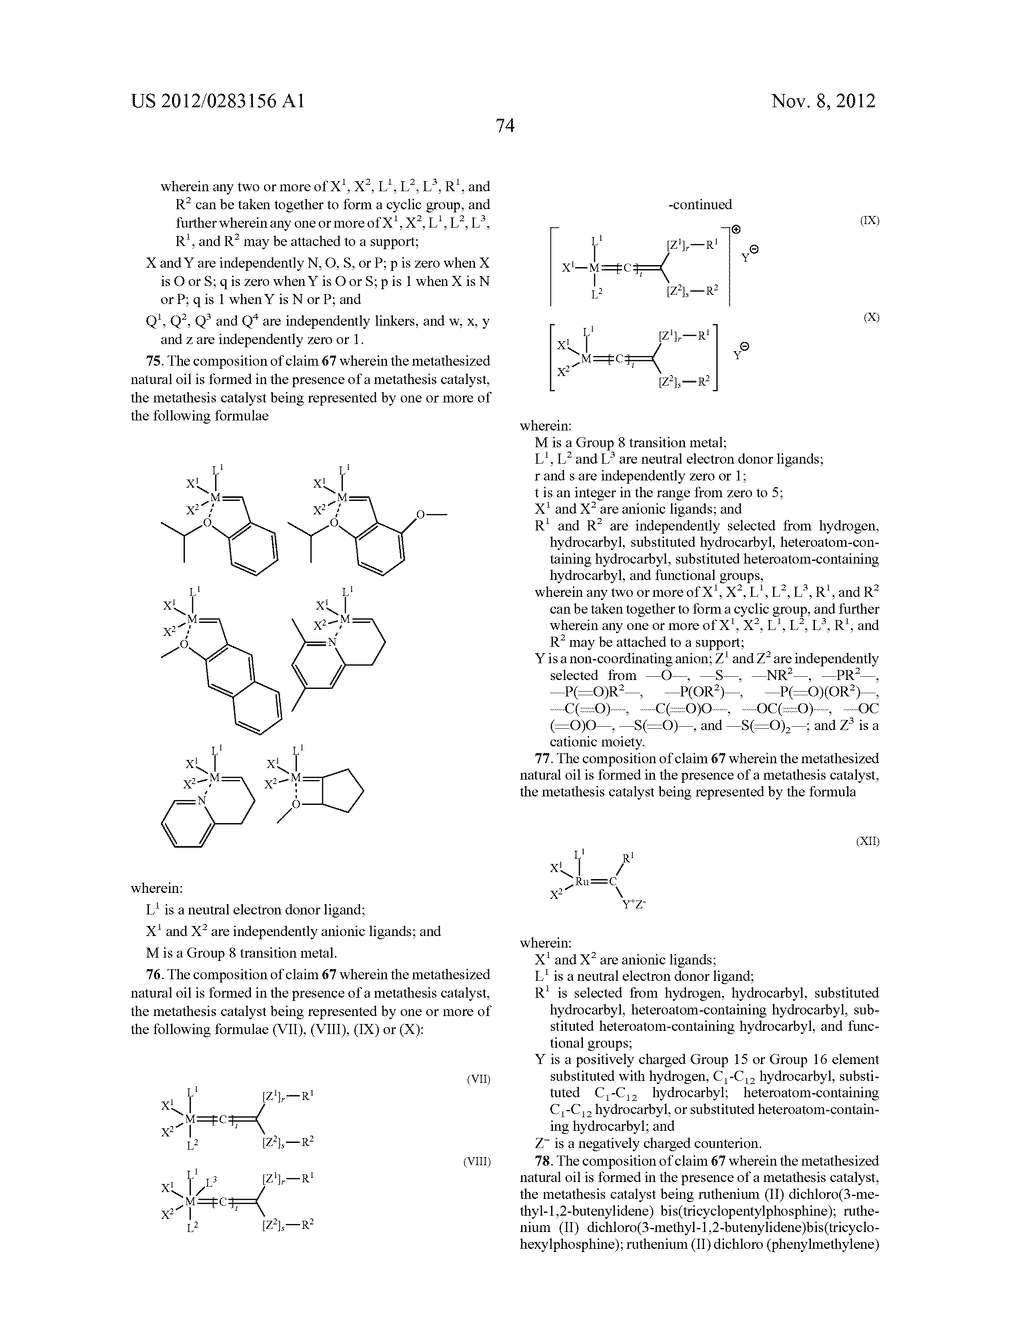 FUNCTIONALIZED MONOMERS - diagram, schematic, and image 77